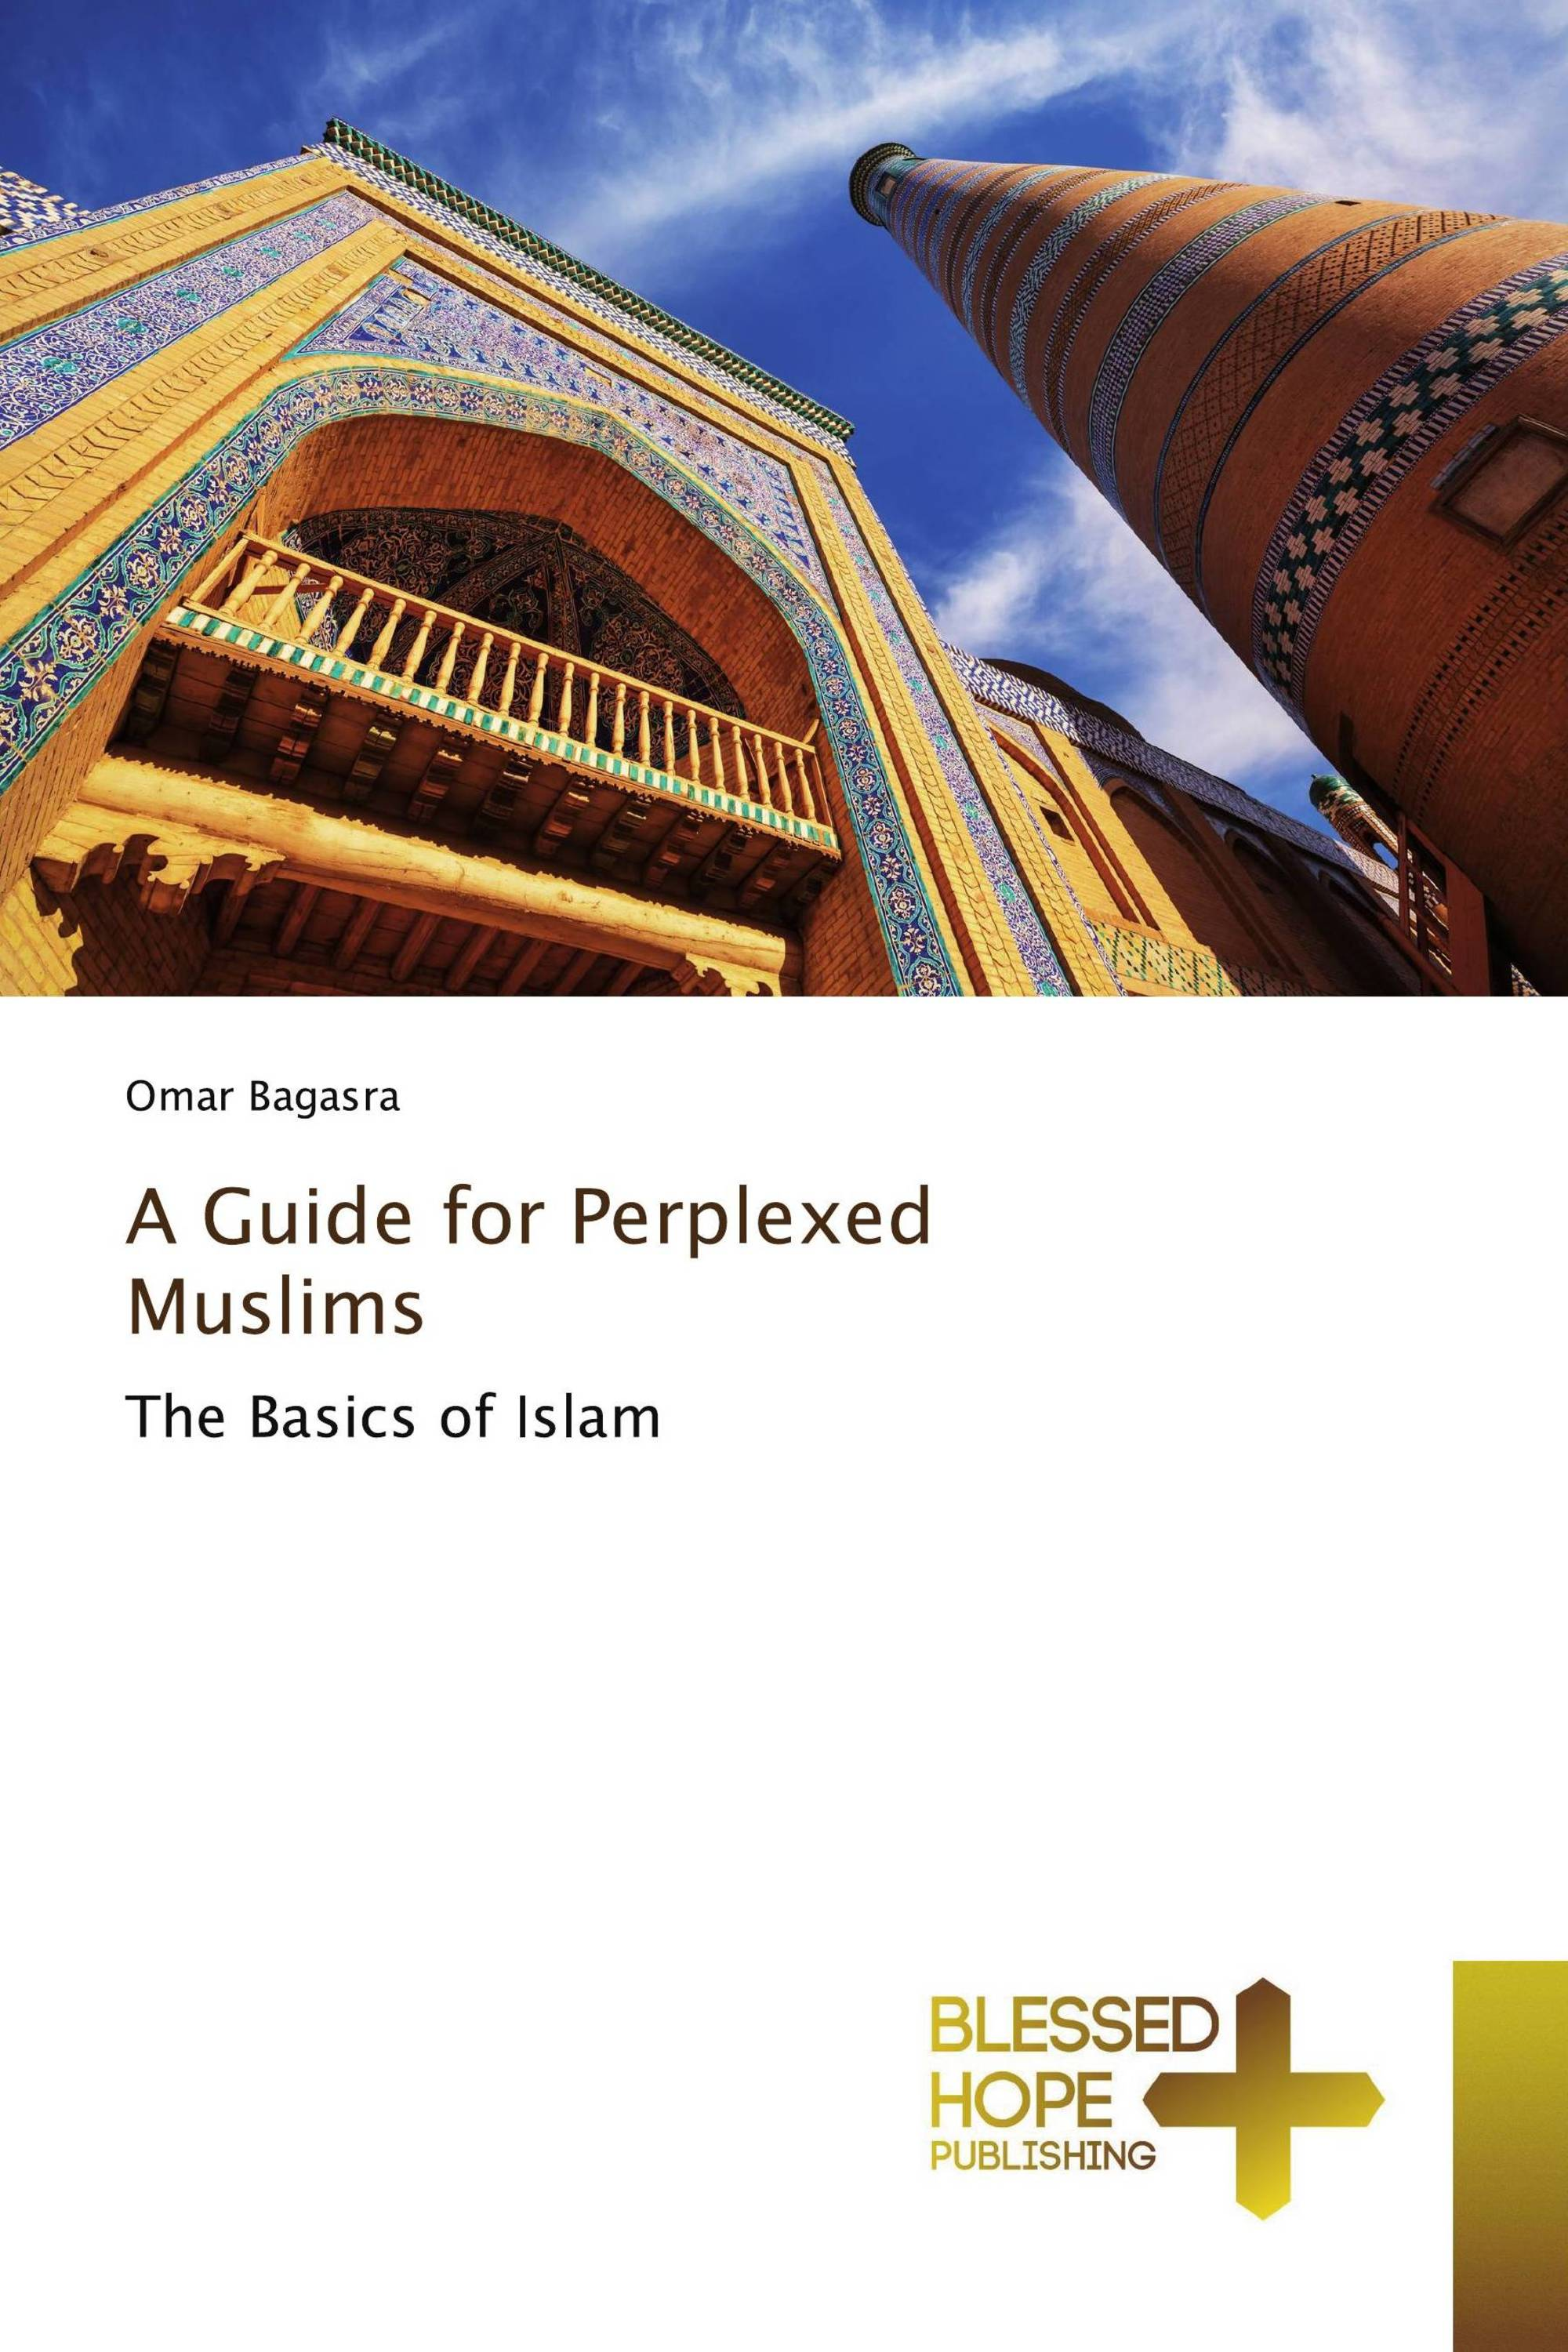 A Guide for Perplexed Muslims